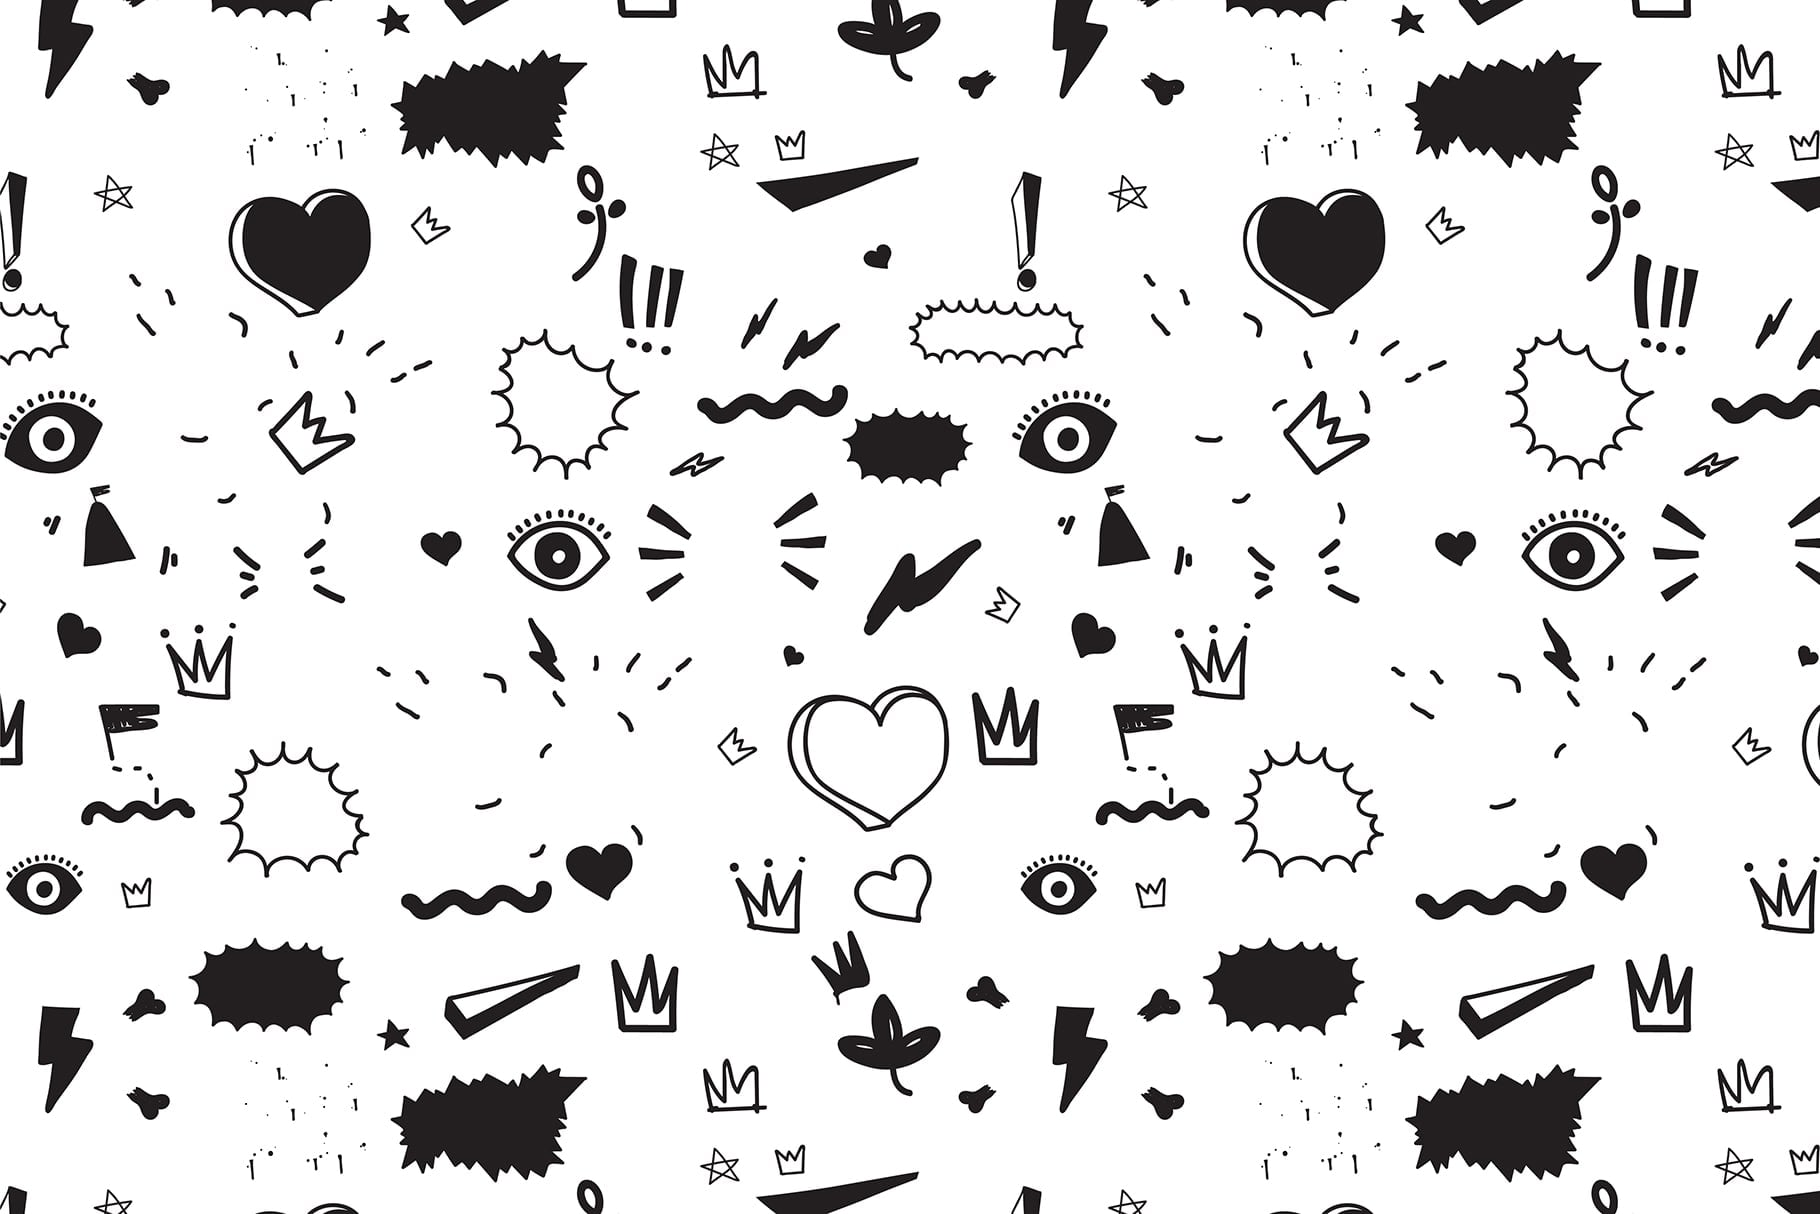 170 Doodles + Elements + Patterns - $25 Only - Preview 12 min